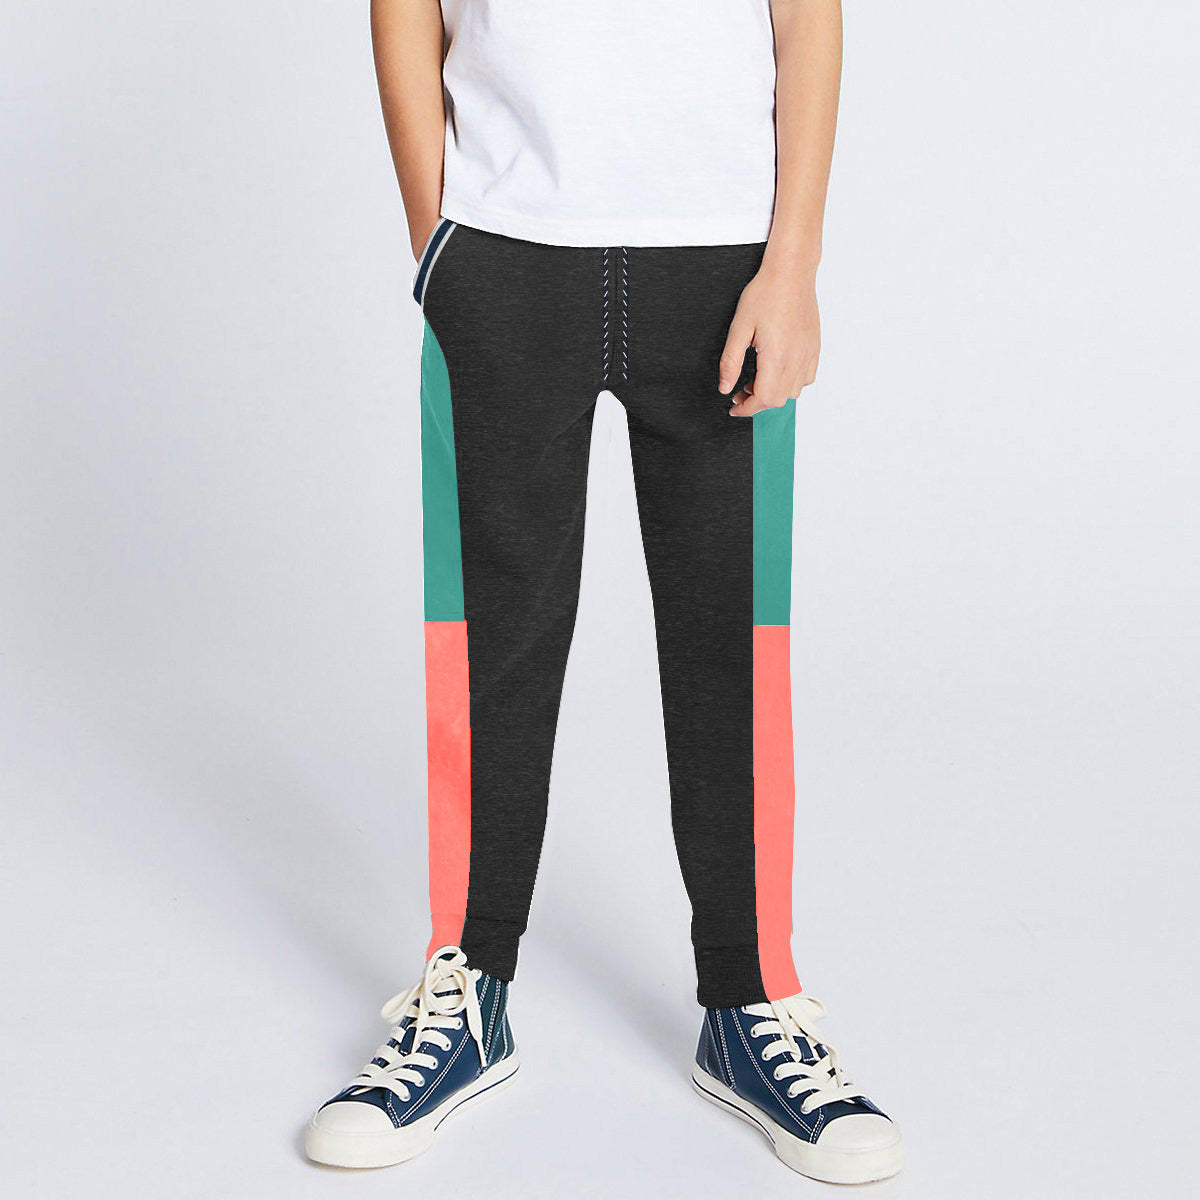 Next Slim Fit Jogger Trouser For Kids-Charcoal with Cyan & Laim Pink Panels-SP2679